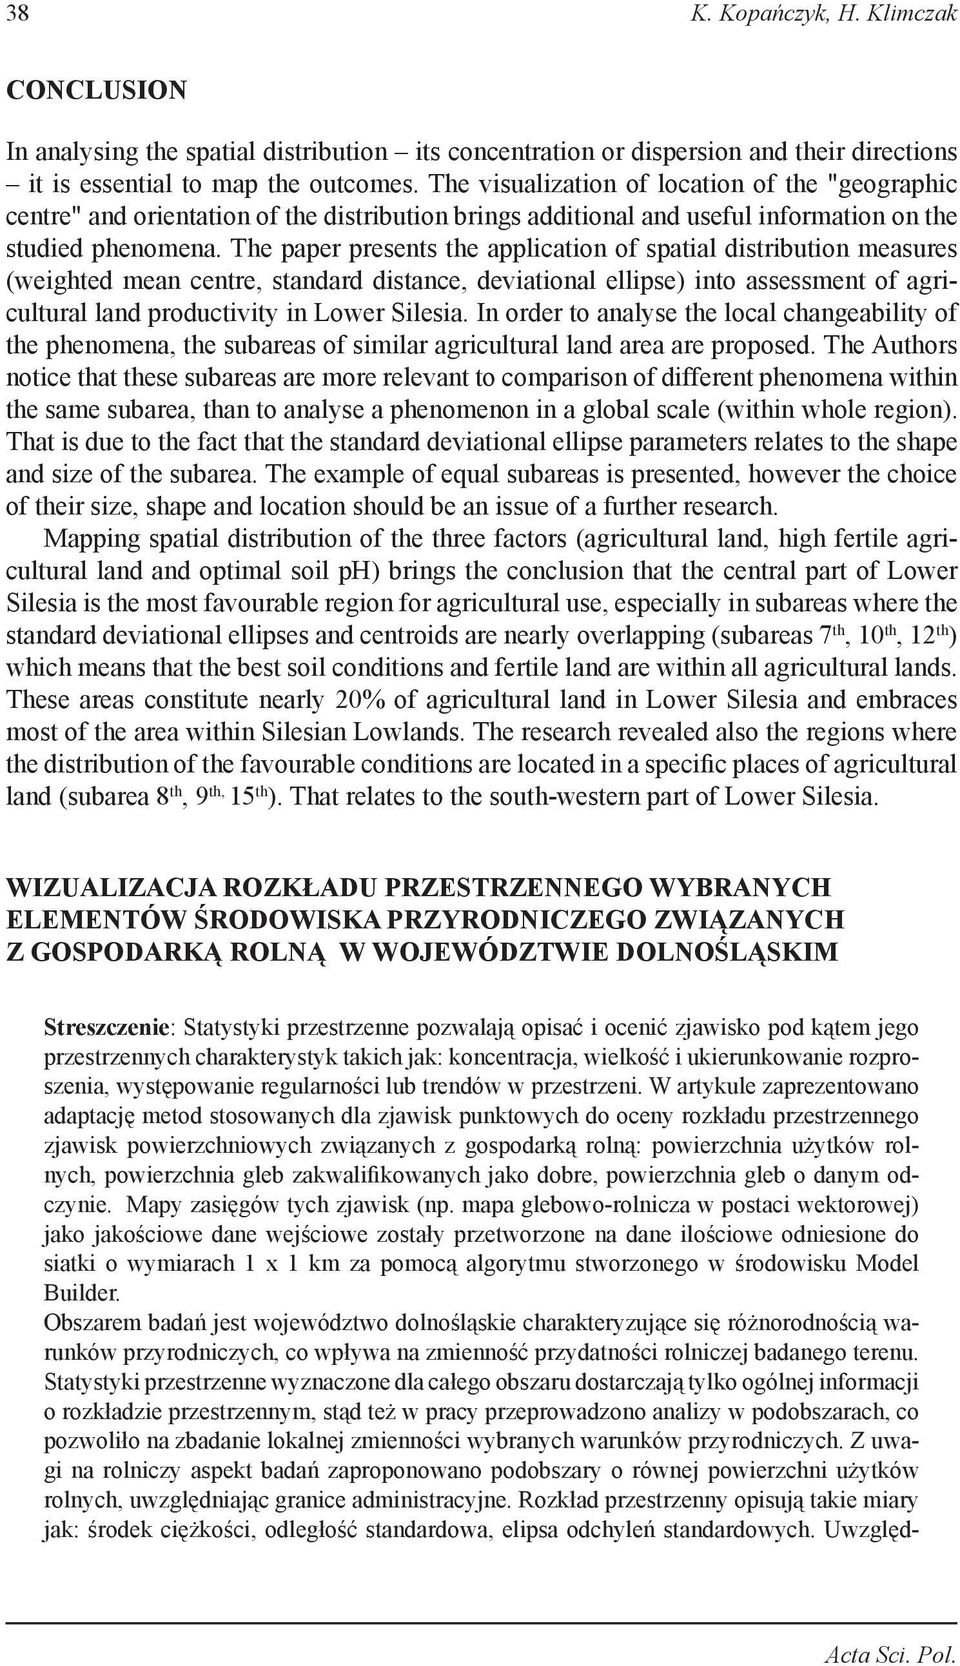 The paper presets the applicatio of spatial distributio measures (weighted mea cetre, stadard distace, deviatioal ellipse) ito assessmet of agricultural lad productivity i Lower Silesia.